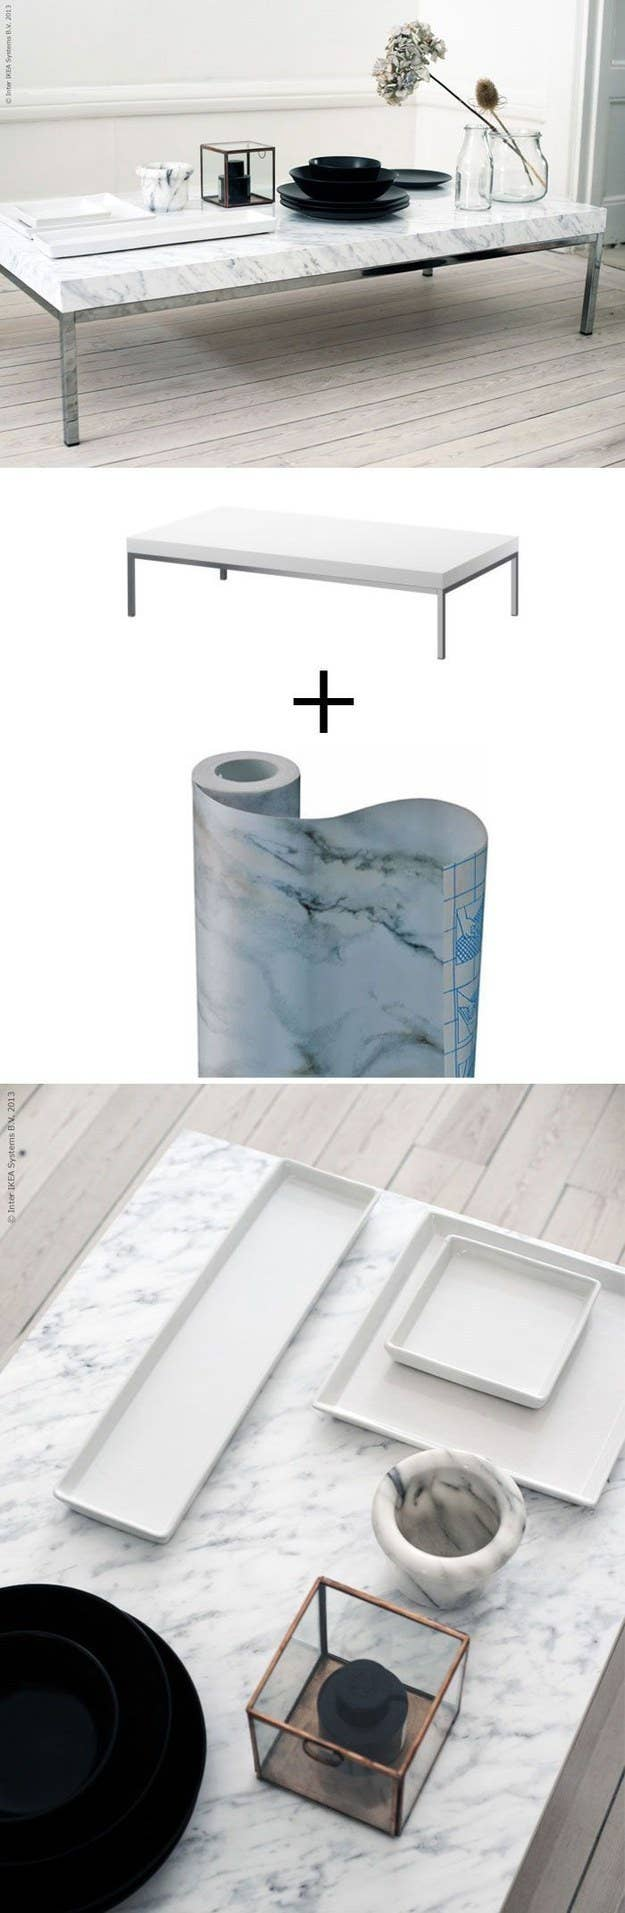 Coffee table with a shelf youtube - Cover The Klubbo Coffee Table 49 99 With Marble Contact Paper